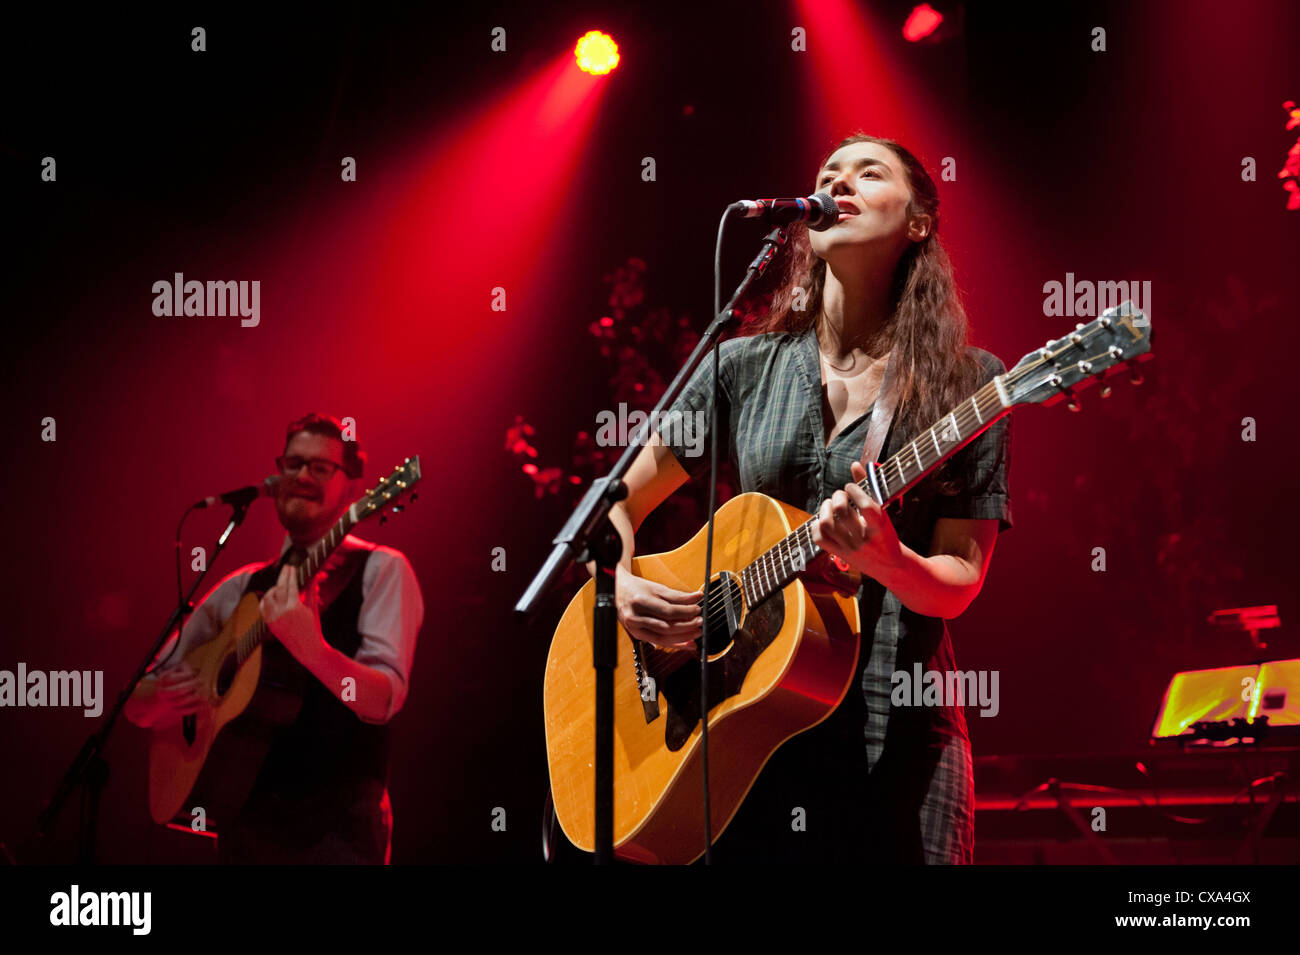 Lisa Hannigan in concert at Birmingham HMV Institute, 22 September 2012, supporting Richard Hawley - Stock Image